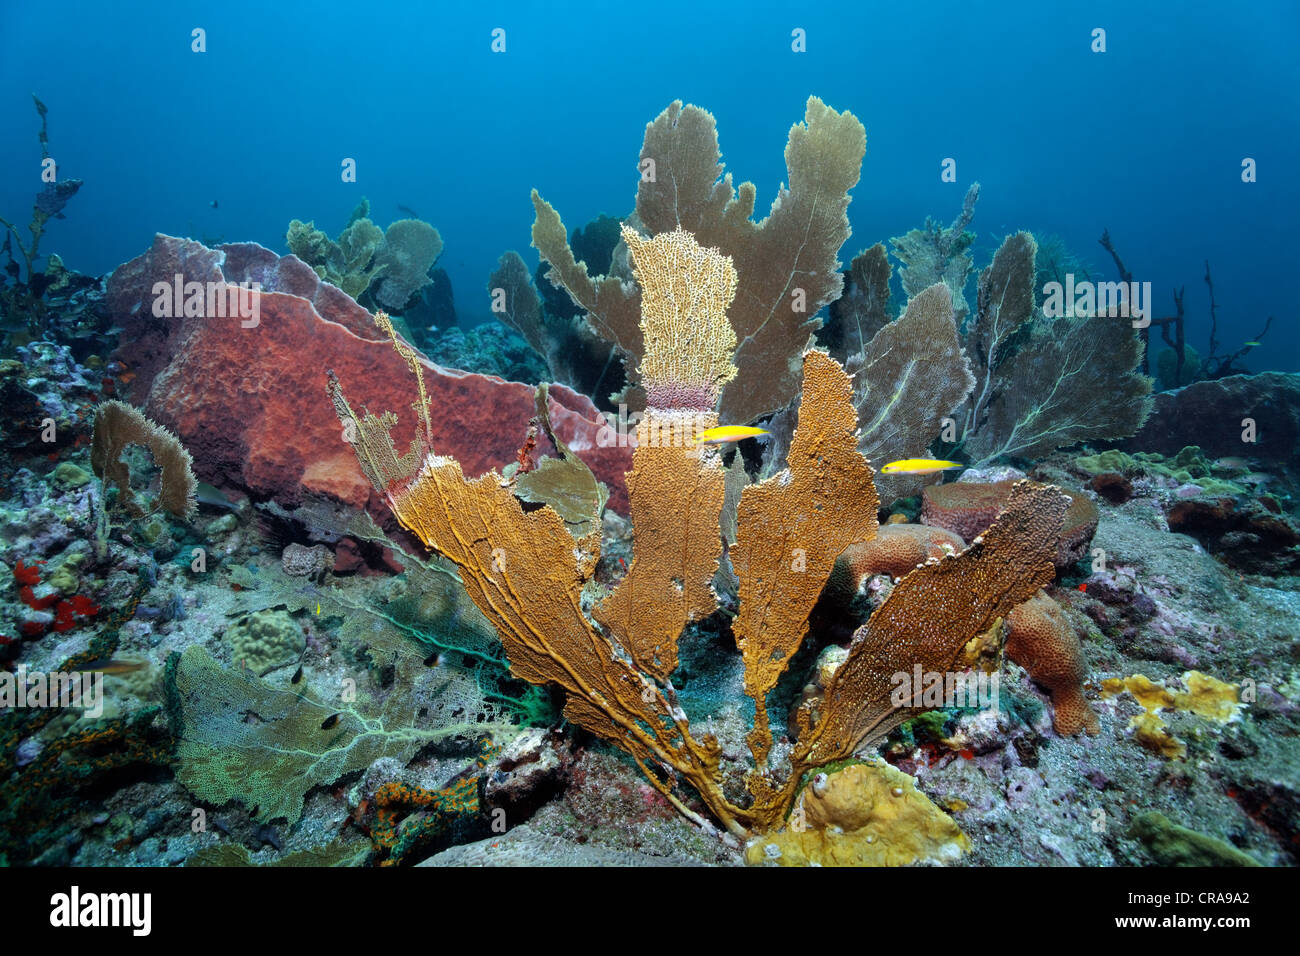 Branching Fire Coral (Millepora alcicornis) covering a Venus Sea Fan (Gorgonia flabellum), coral reef, St. Lucia Stock Photo